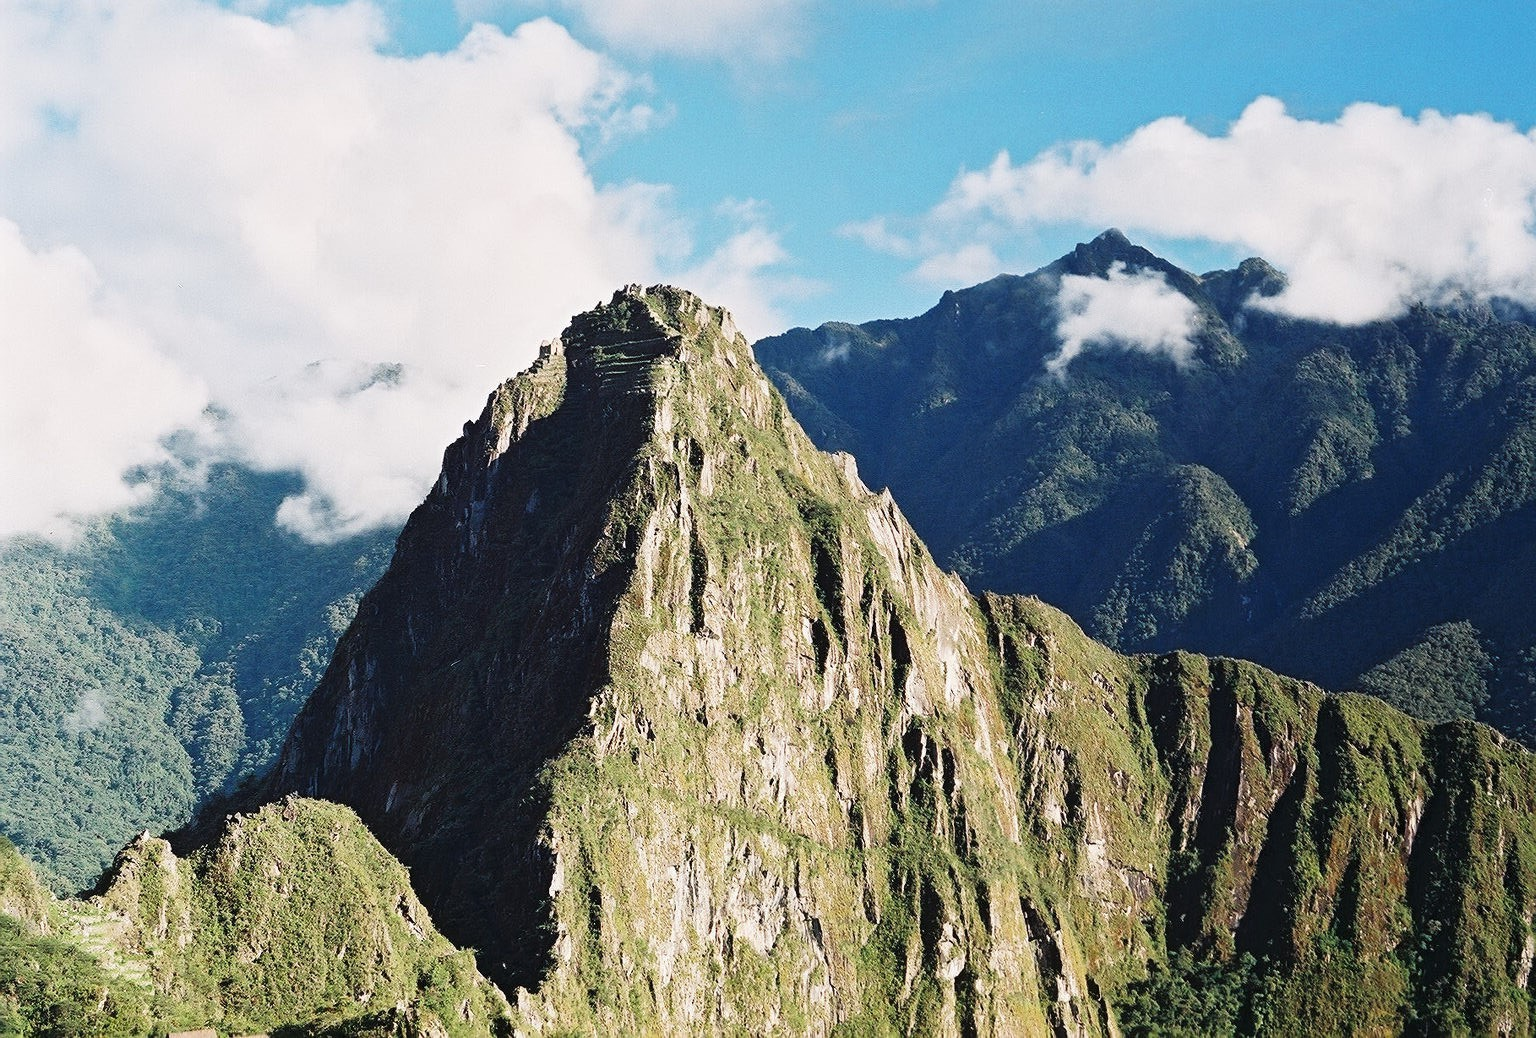 Shamanic Voyages trip to the Andes of Peru' and Bolivia, including Lake Titicaca